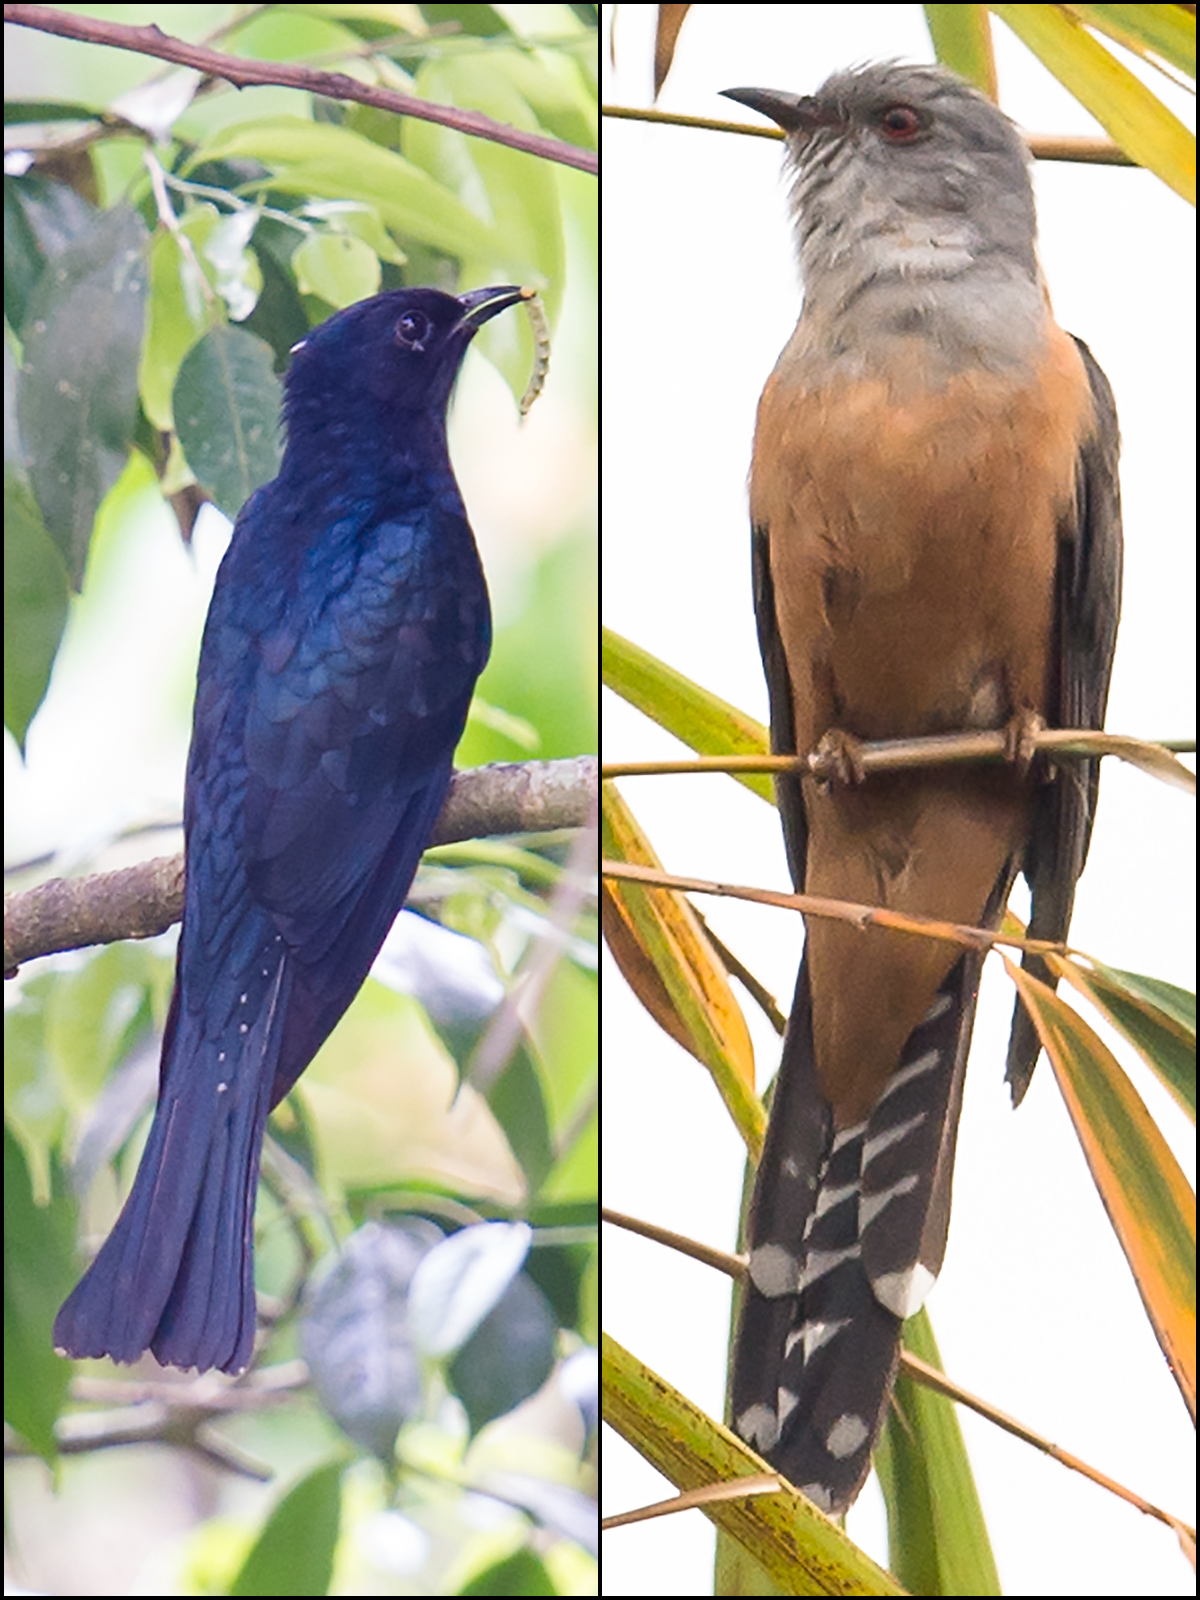 Fork-tailed Drongo-Cuckoo <em>Surniculus dicruroides</em> (L) and Plaintive Cuckoo <em>Cacomantis merulinus</em> occur in south China. Neither is likely to stray to the Shanghai region, but may be found as close to Shanghai as the mountains of Zhejiang. L: Skytree Nature Reserve (21.62801, 101.58878), Xishuangbanna, Yunnan, China, 18 March 2012 (Craig Brelsford). R: Yingjiang, Yunnan, March 2017 (Kai Pflug).</em></em>